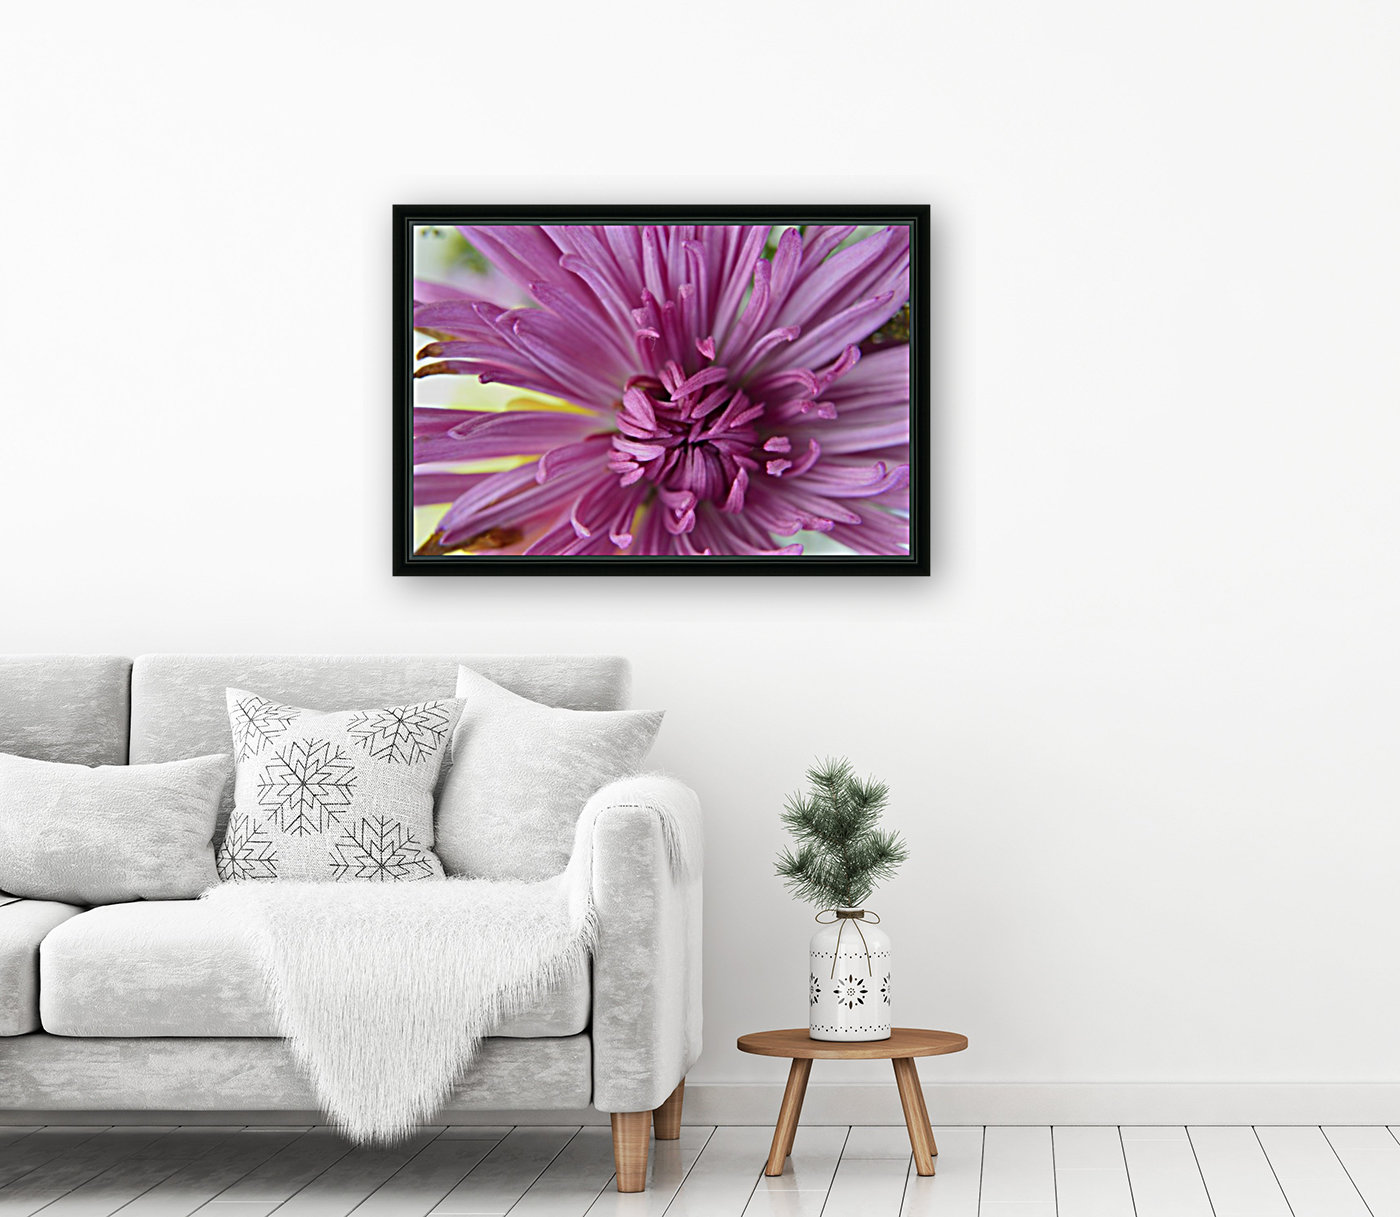 Fuscia-Colored Aster with Floating Frame